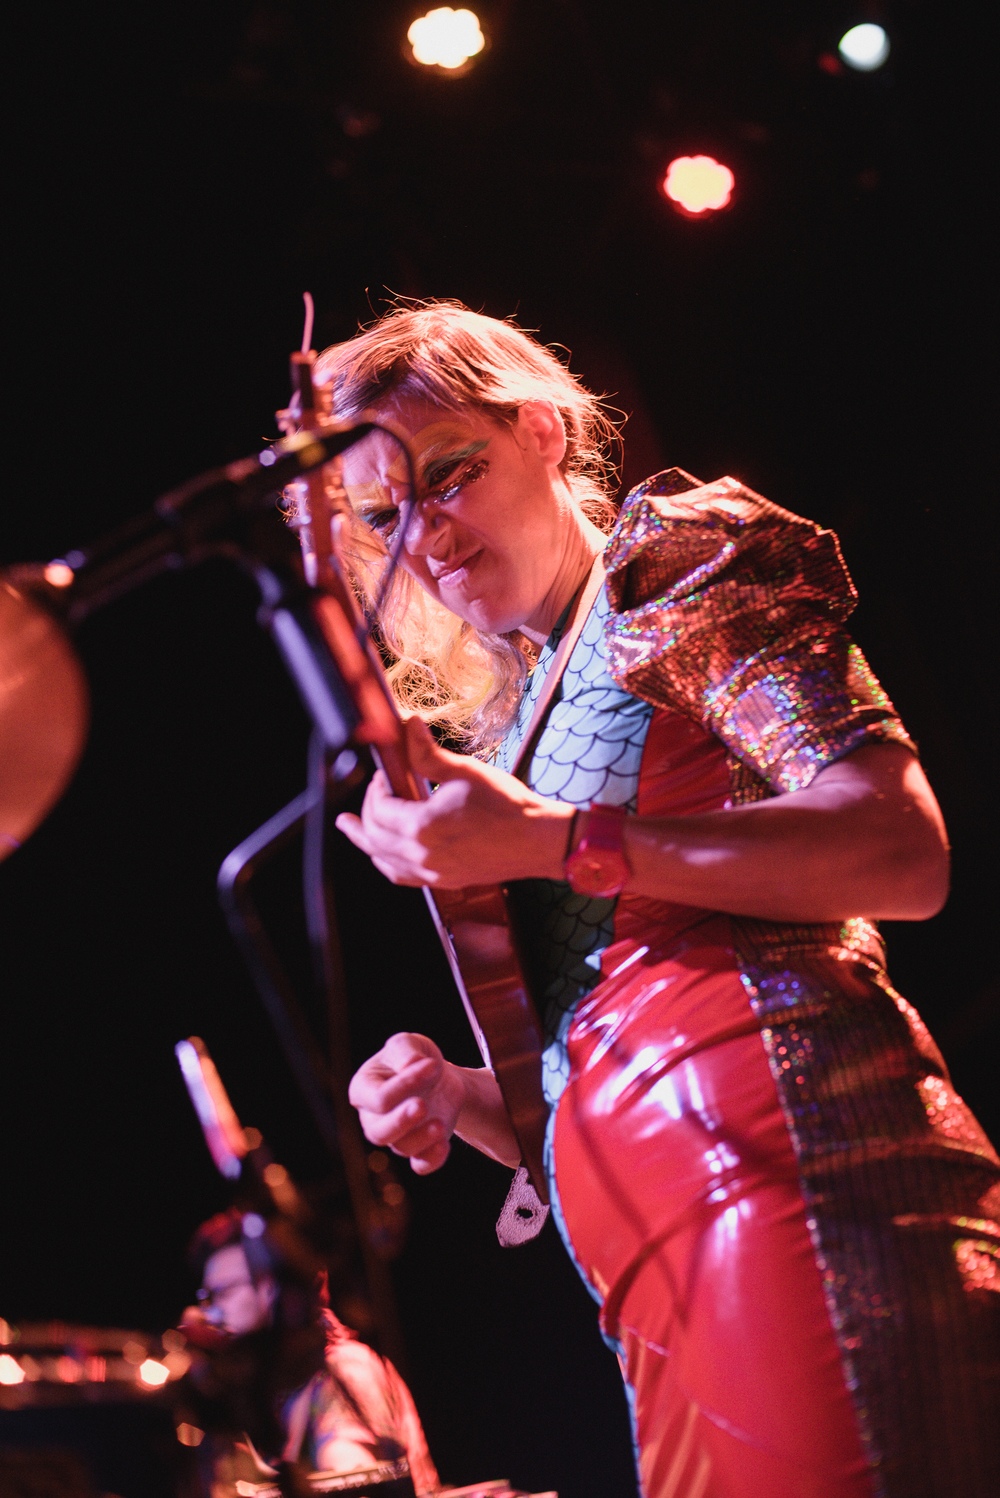 Tune_Yards_5-7-14_Senzamici_0190-6.jpg